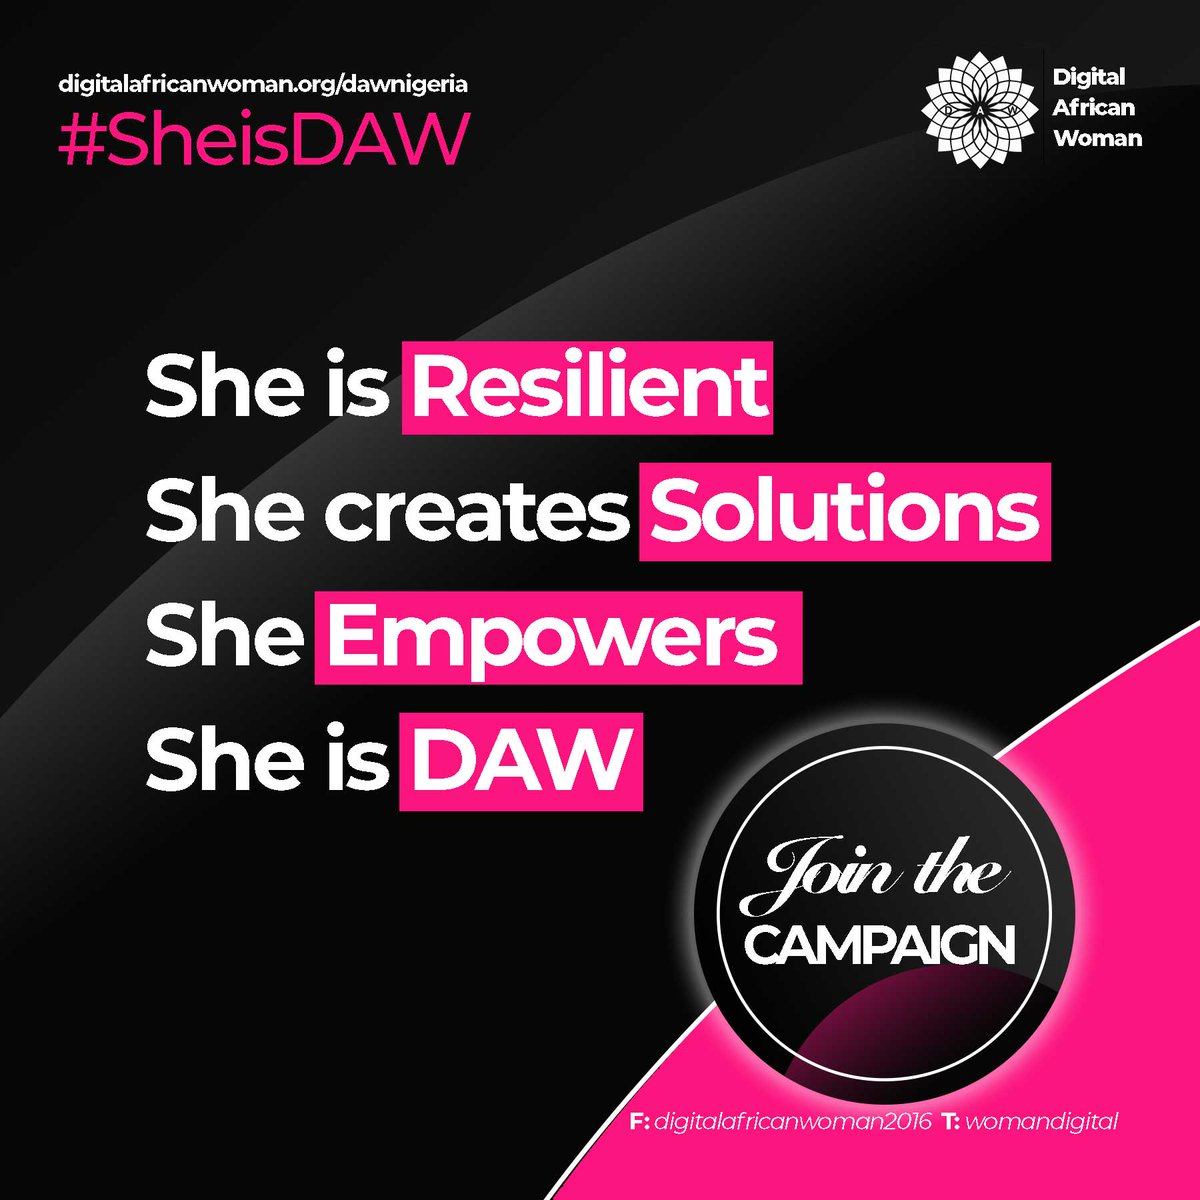 Nominate a woman for the #SheIsDAW award